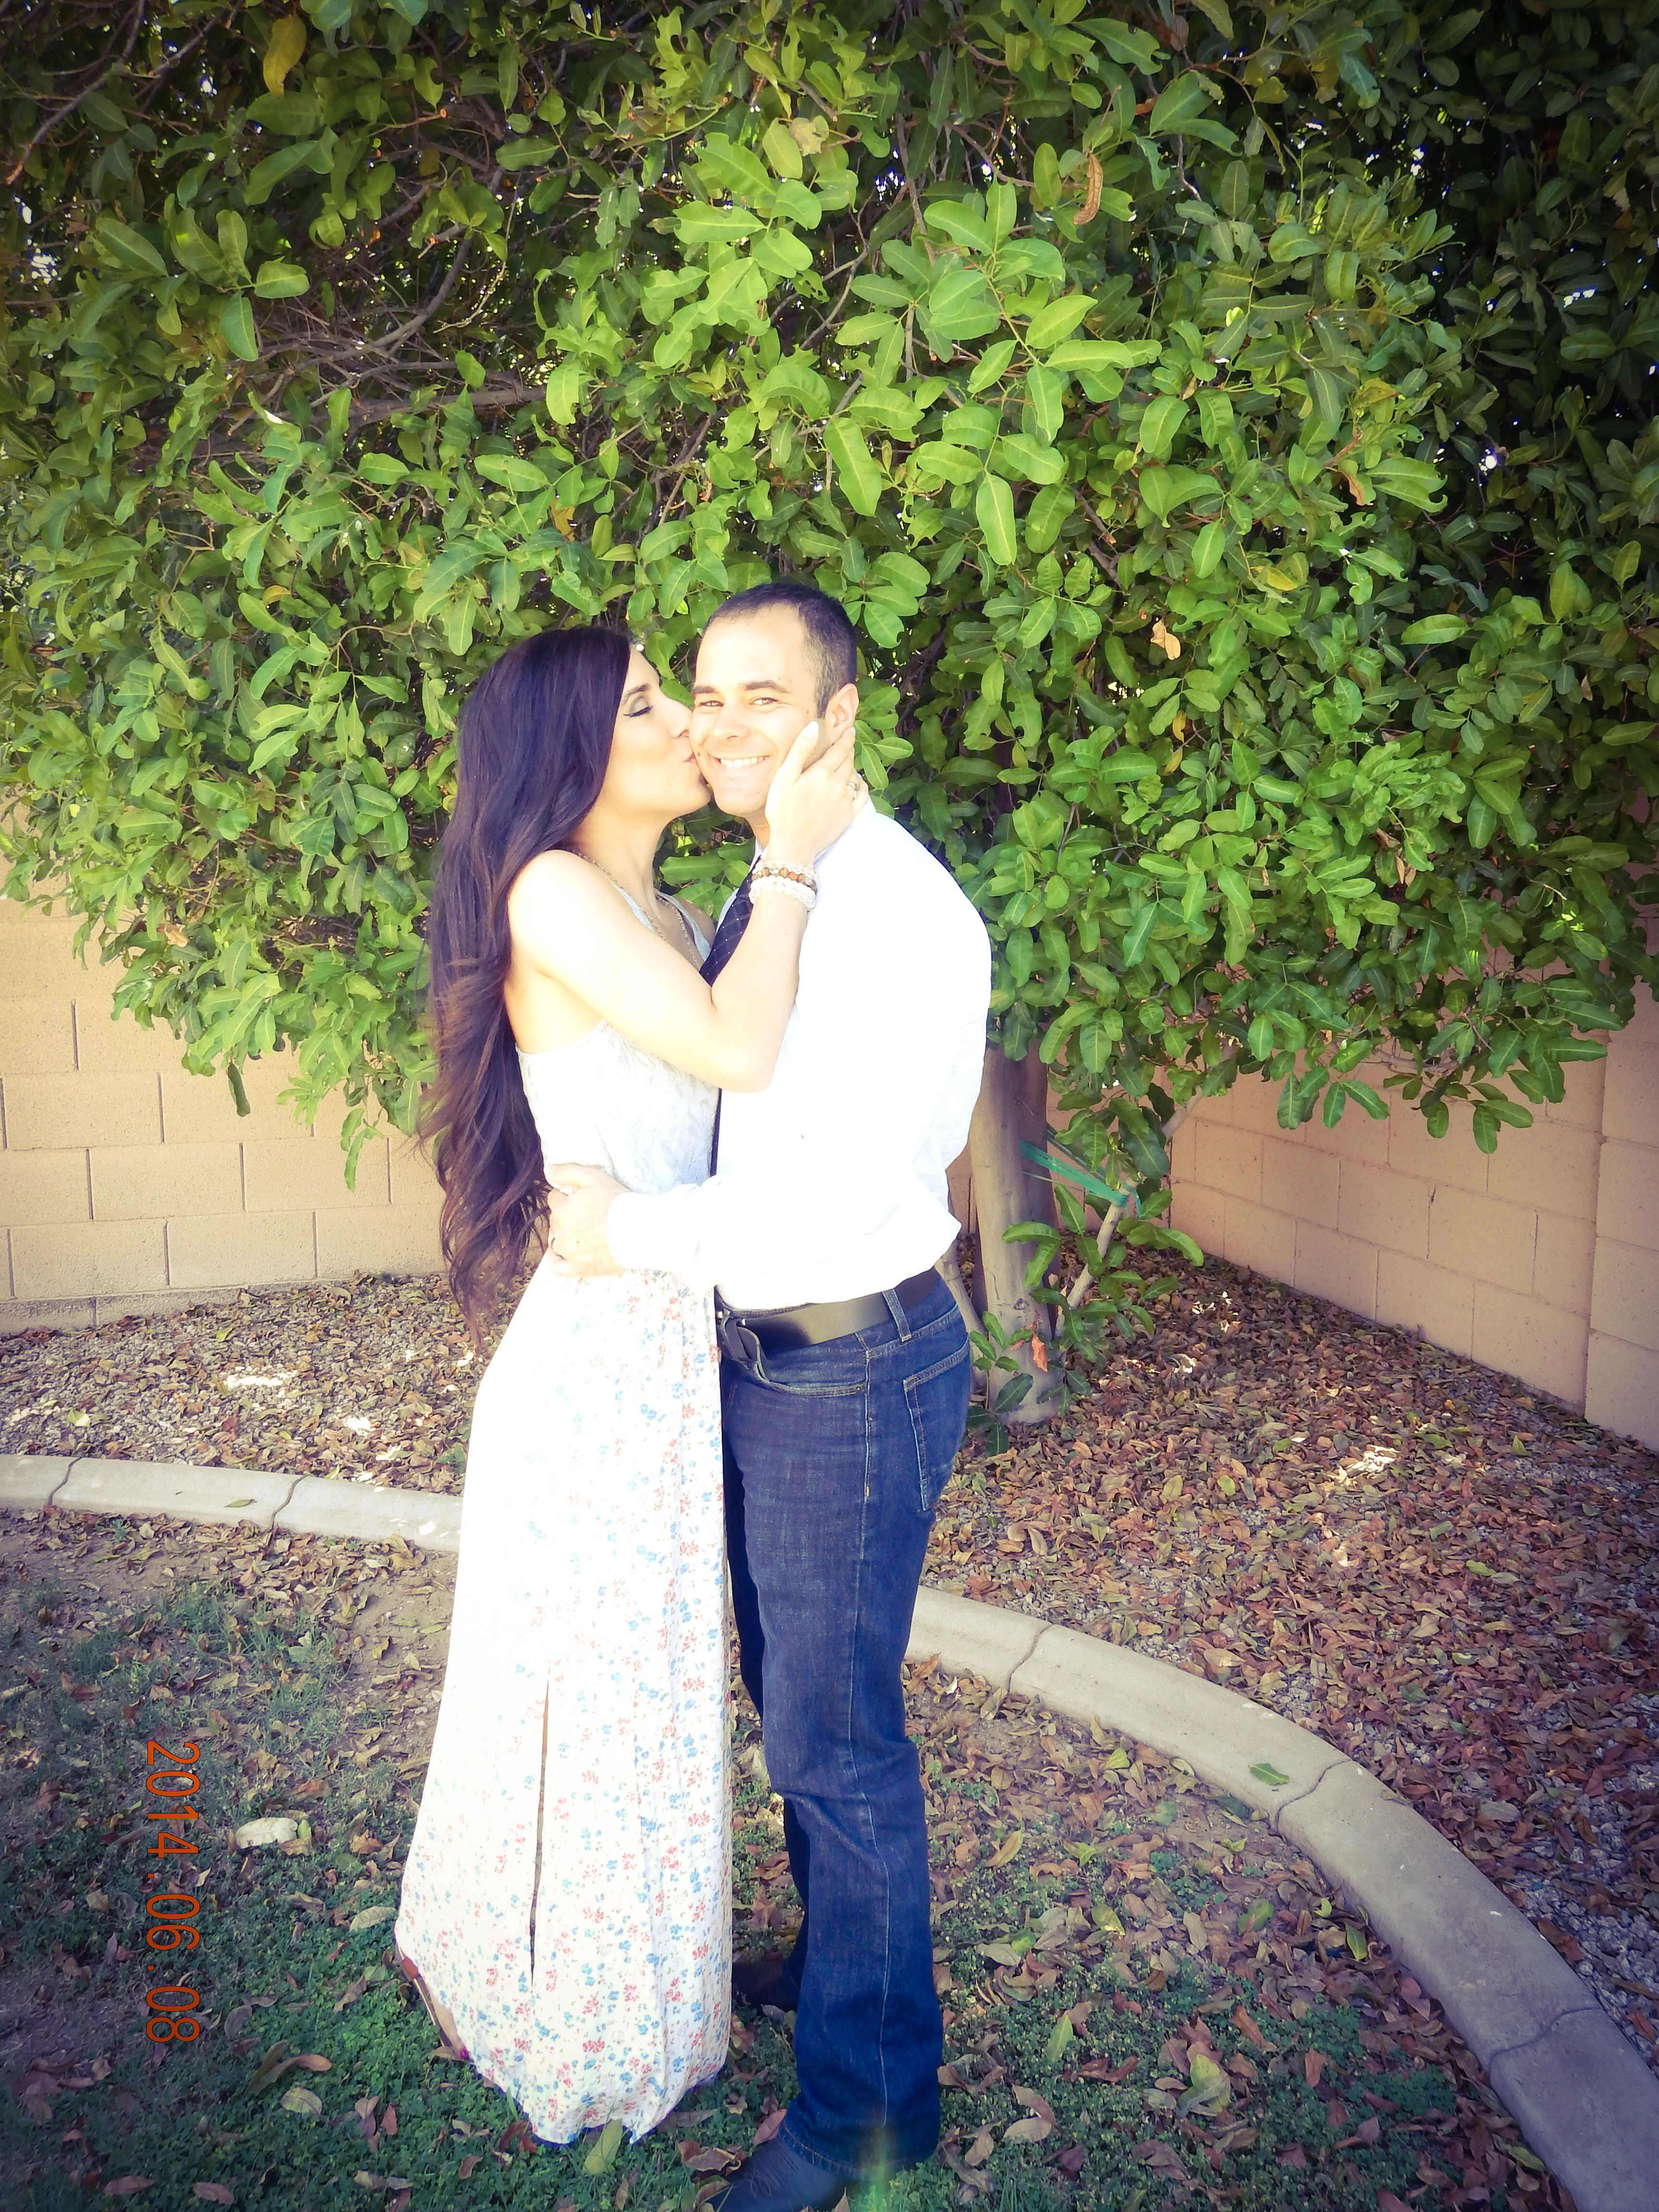 royal center catholic women dating site Our members prefer courtship and romance to casual dating and take the time to   ave maria singles is the best site out there for catholic singles, hands down.